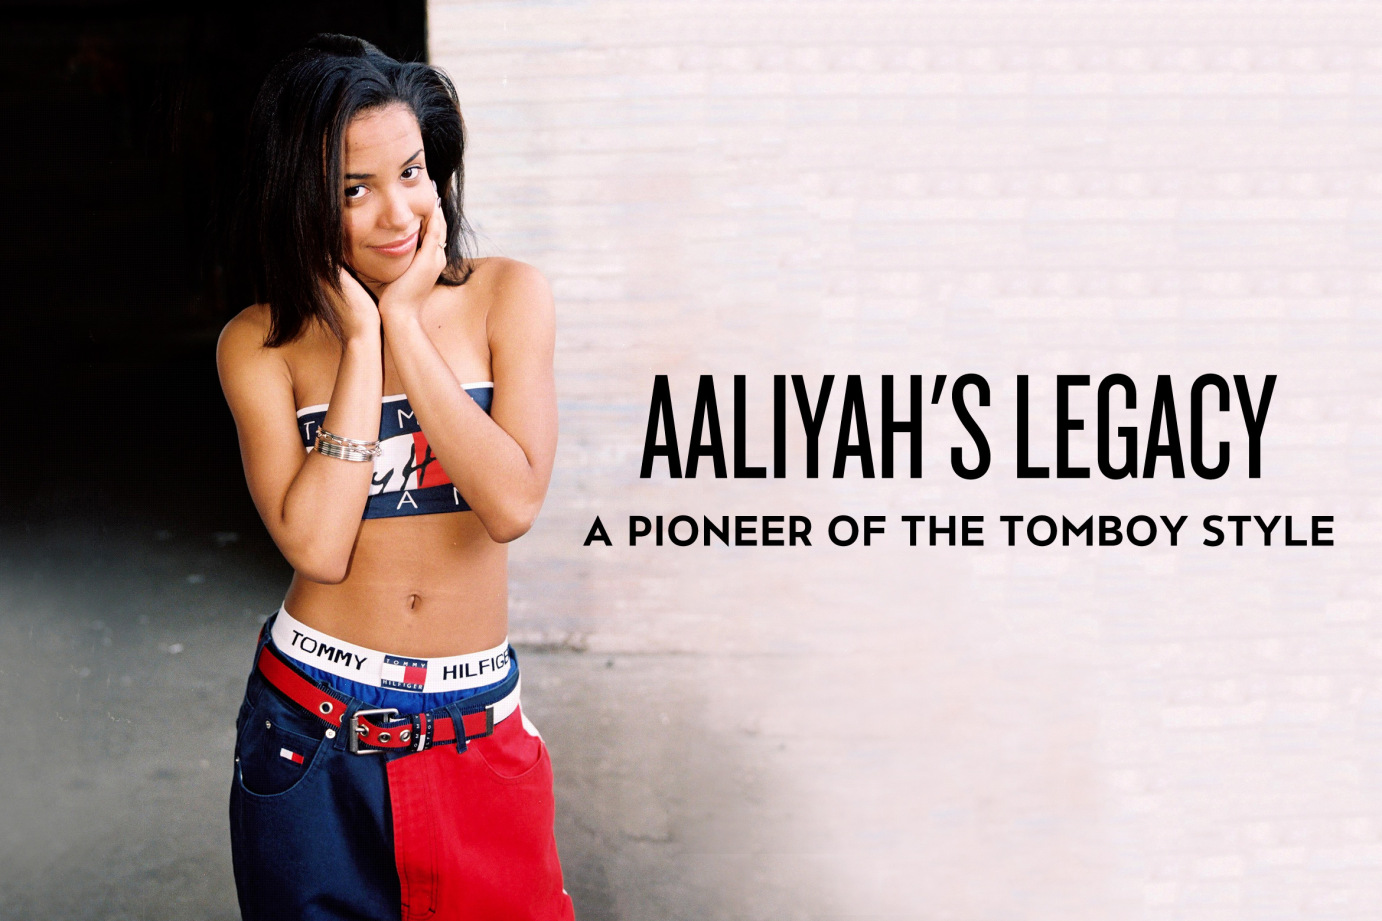 L'HERITAGE D'AALIYAH : UNE PIONNIERE DU STYLE TOMBOY